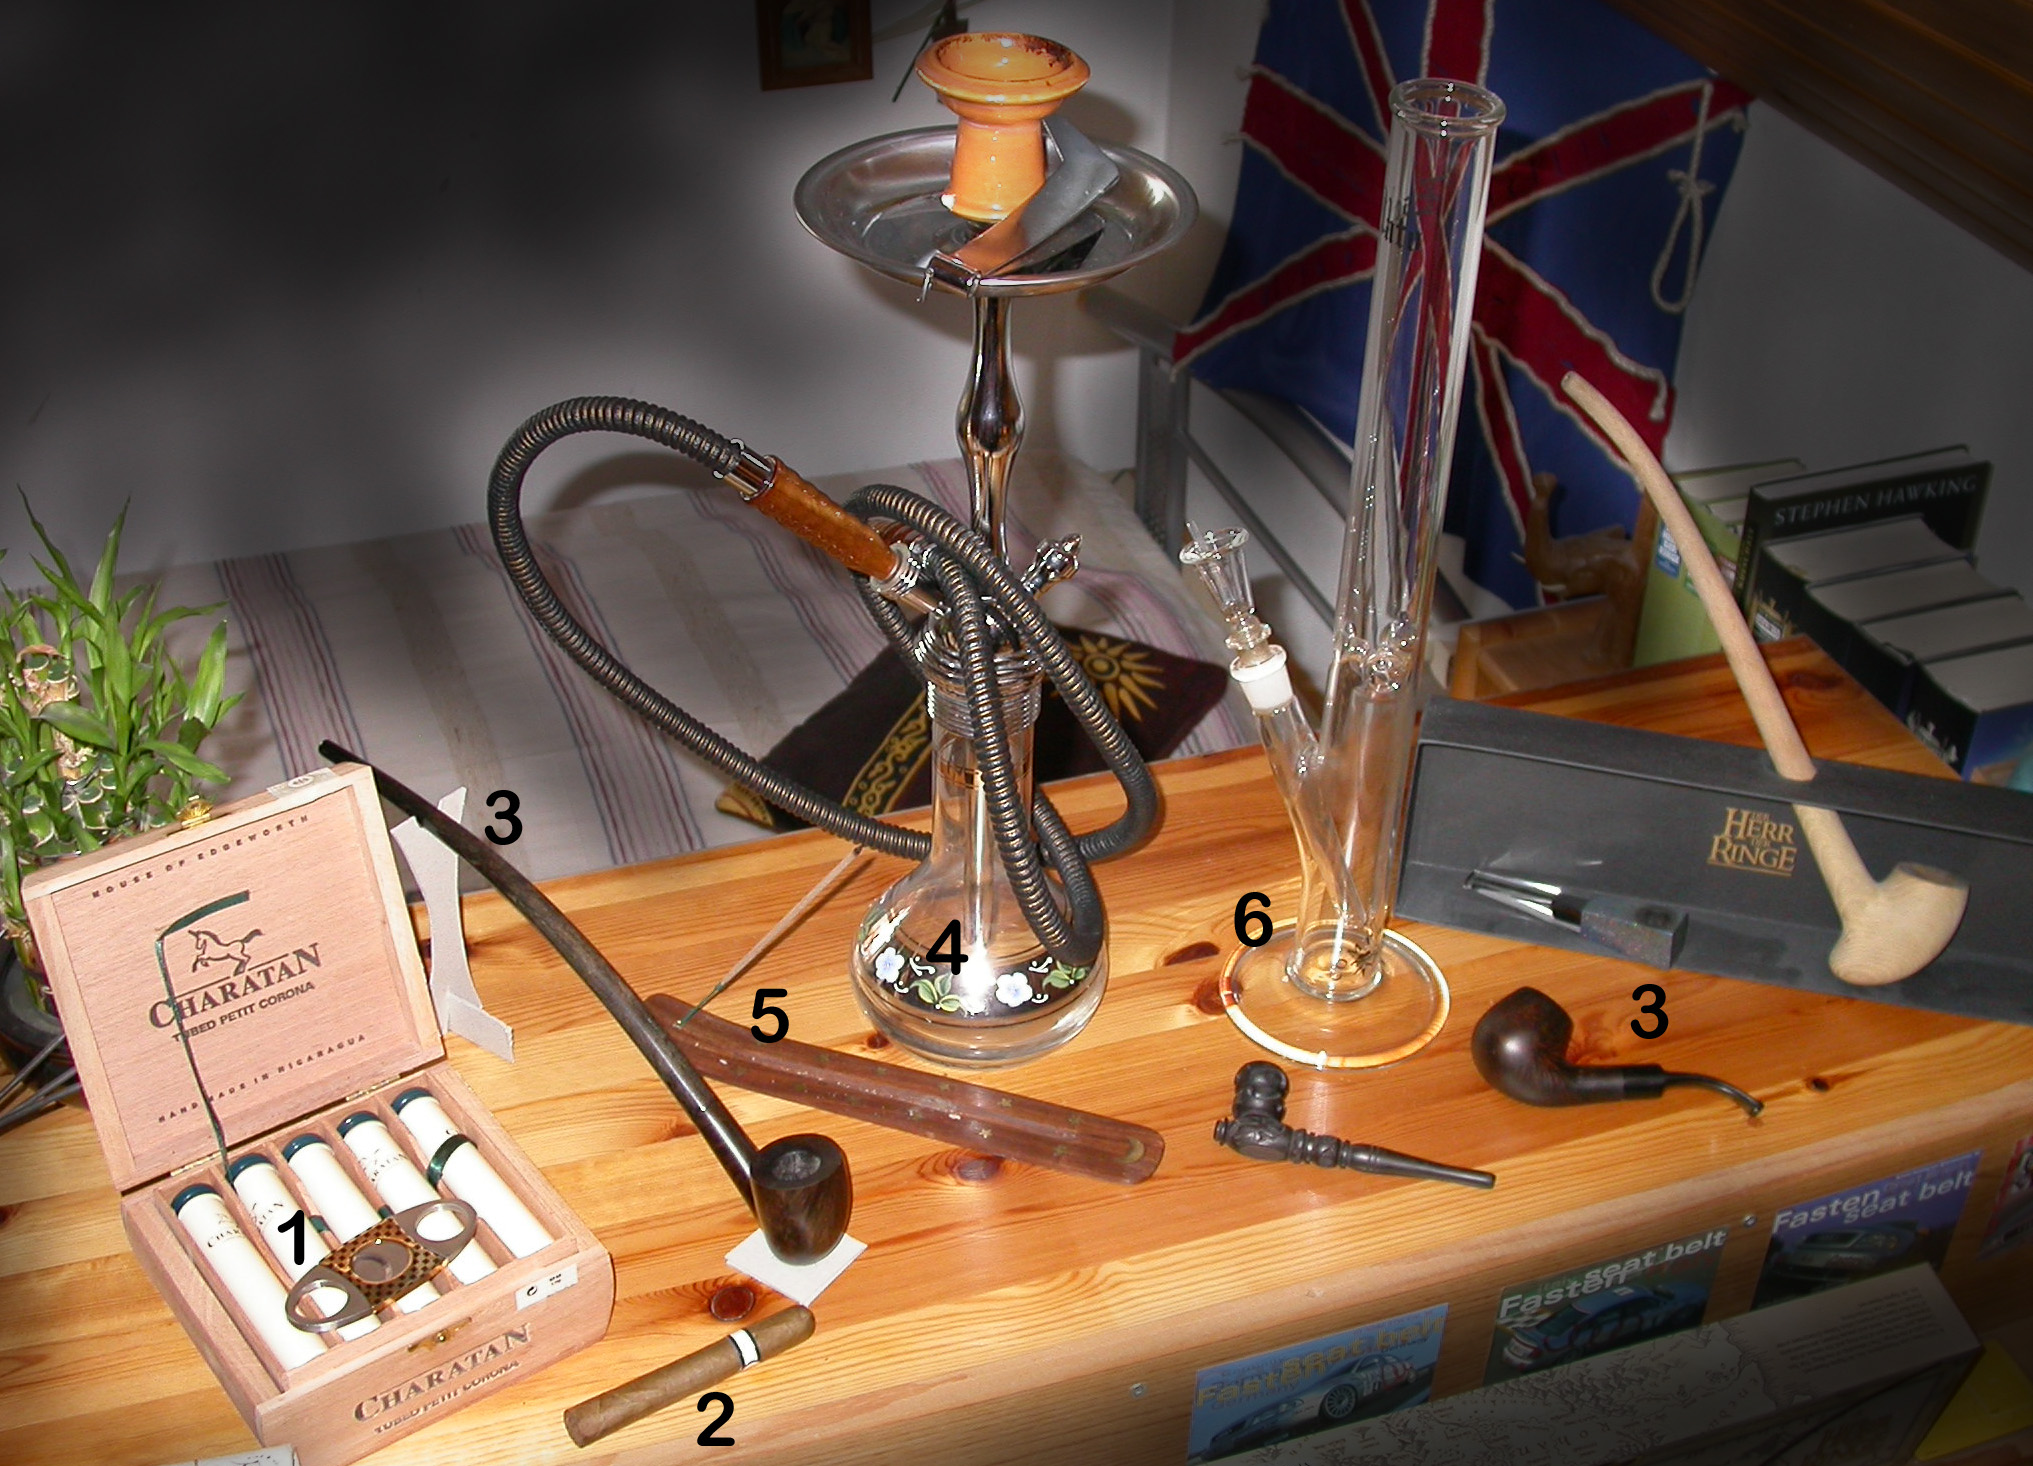 http://upload.wikimedia.org/wikipedia/commons/8/83/Smoking_equipment.jpg